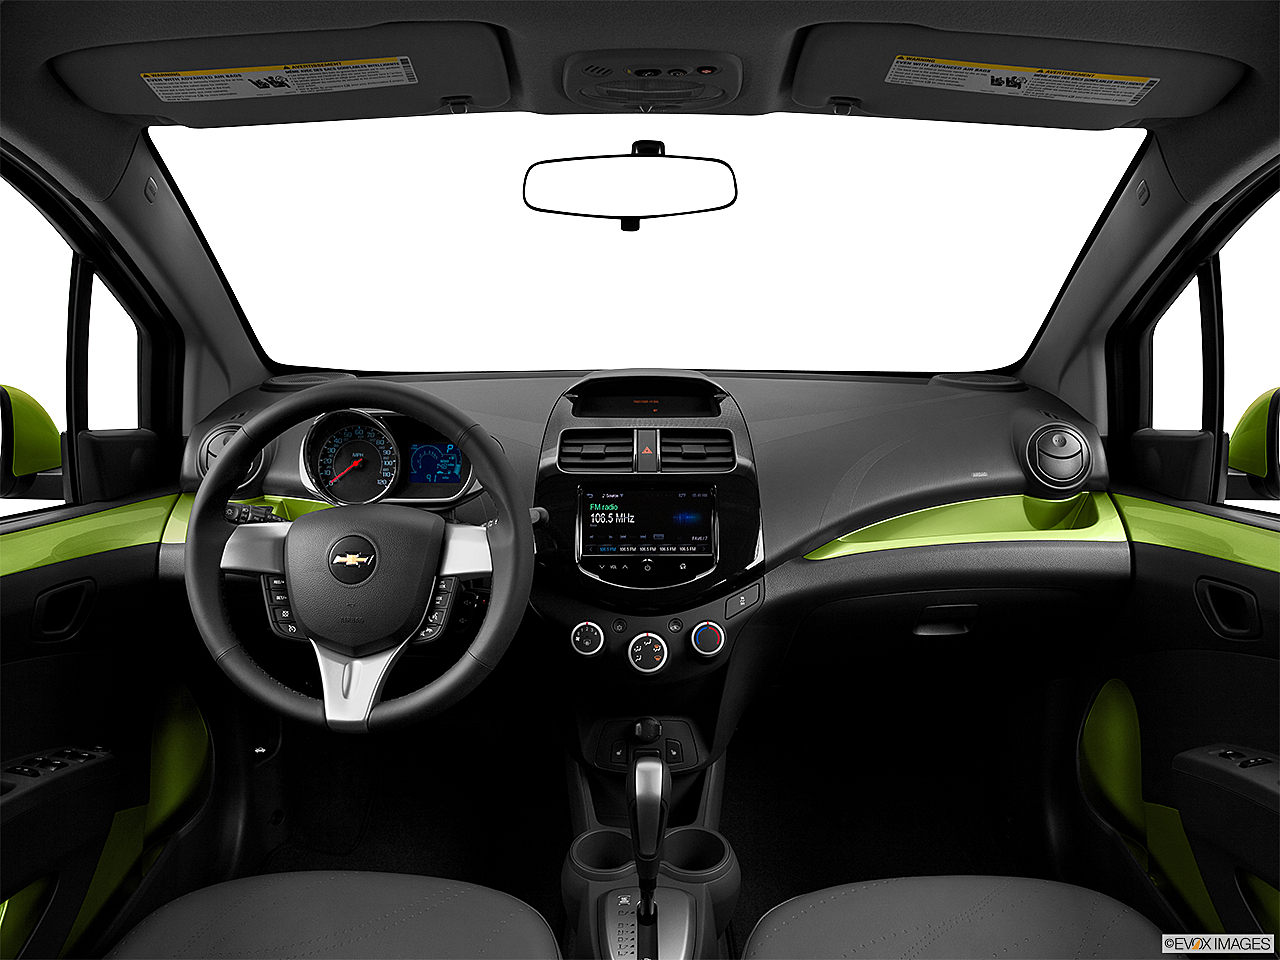 2013 Chevrolet Spark 2LT Automatic, centered wide dash shot